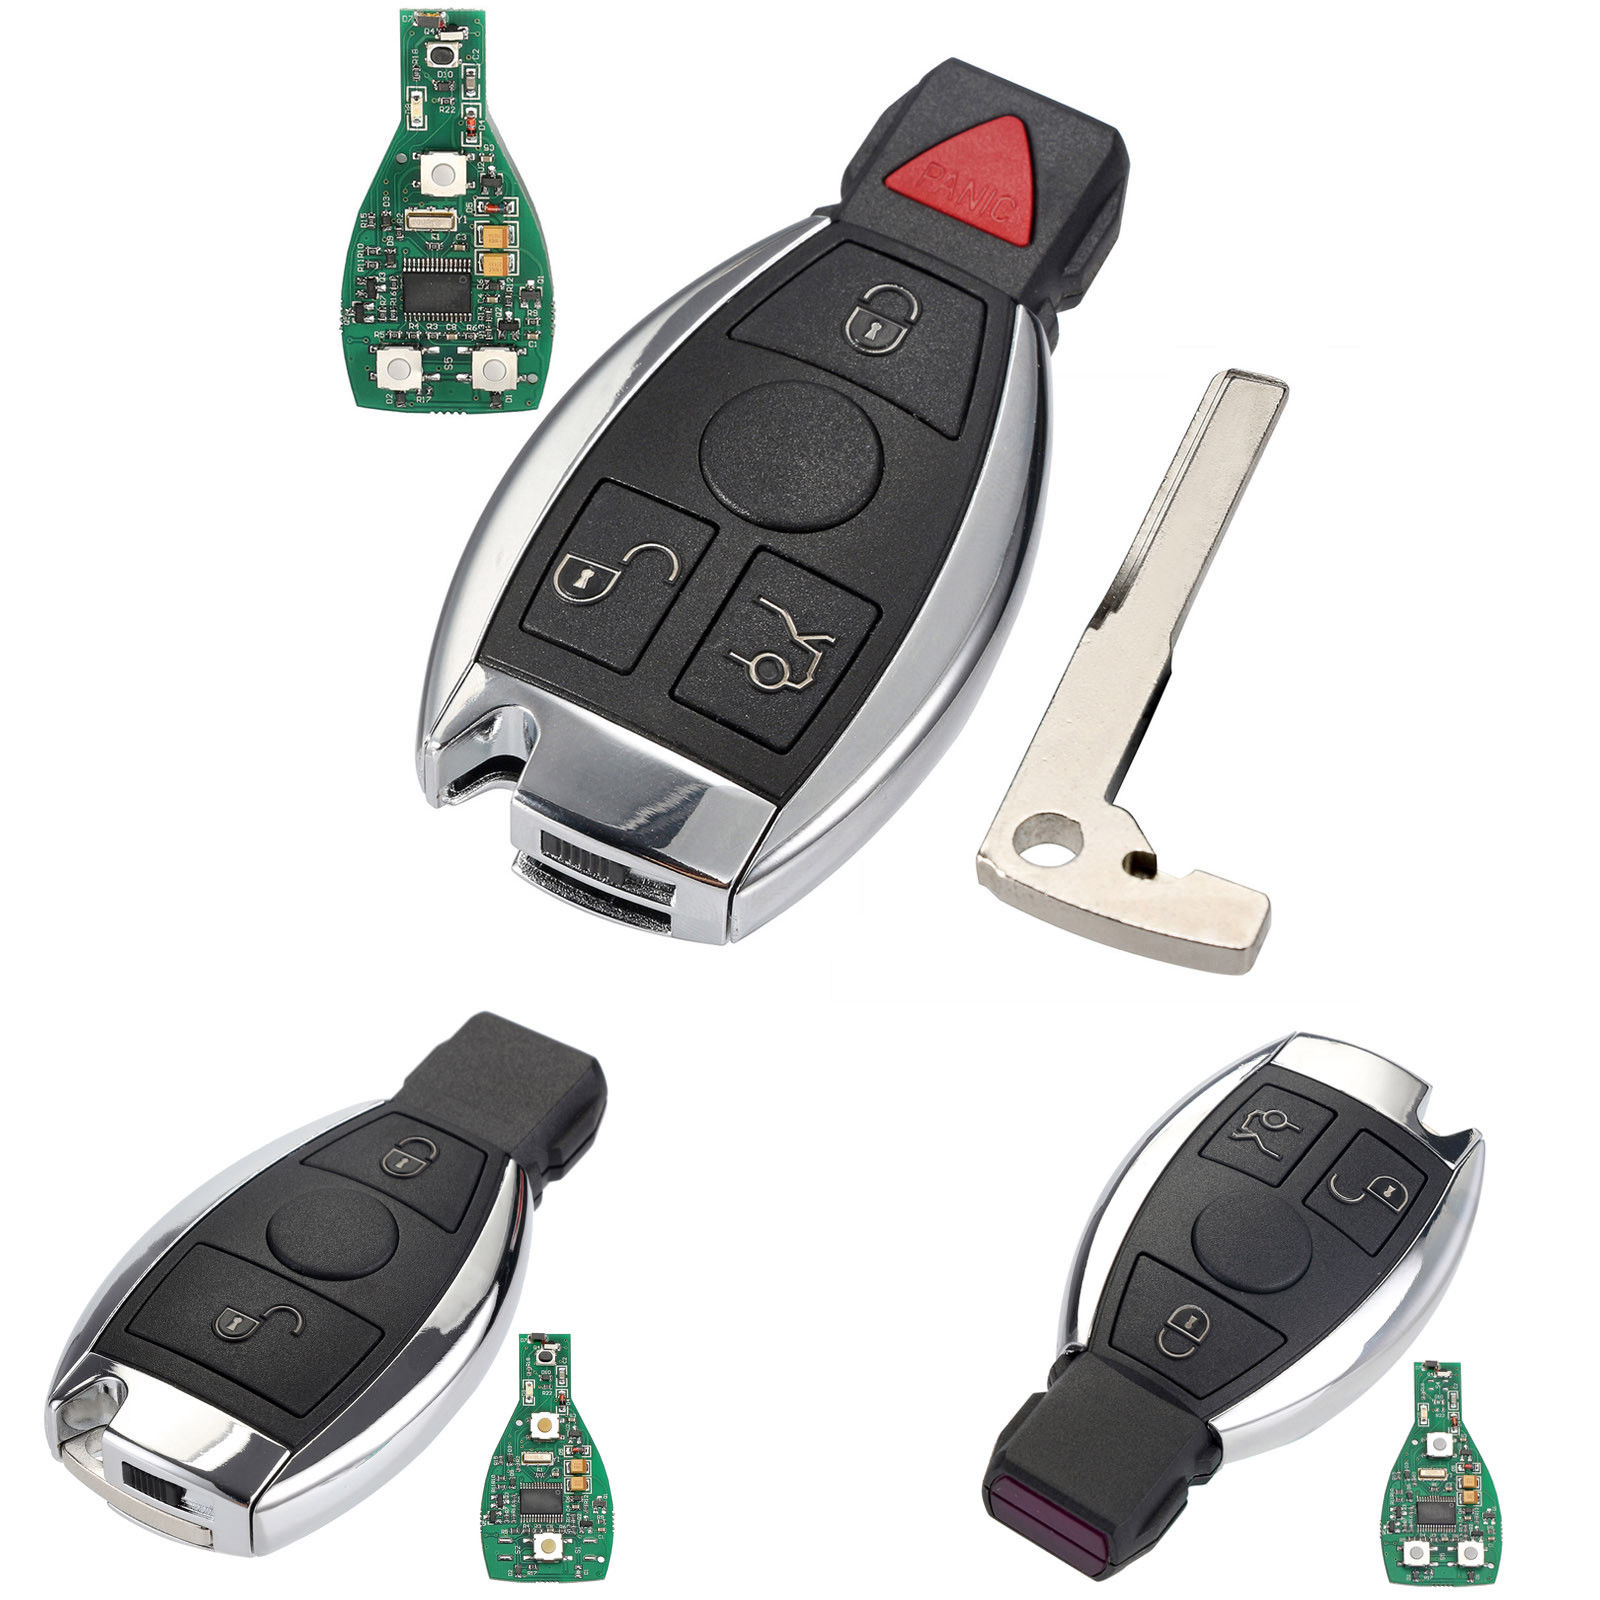 2 3 3+1 Buttons Keyless Entry Remote Car Key 433MHz for Mercedes BENZ 2000+ with BGA&NEC Chip Smart Key Shell Case цены